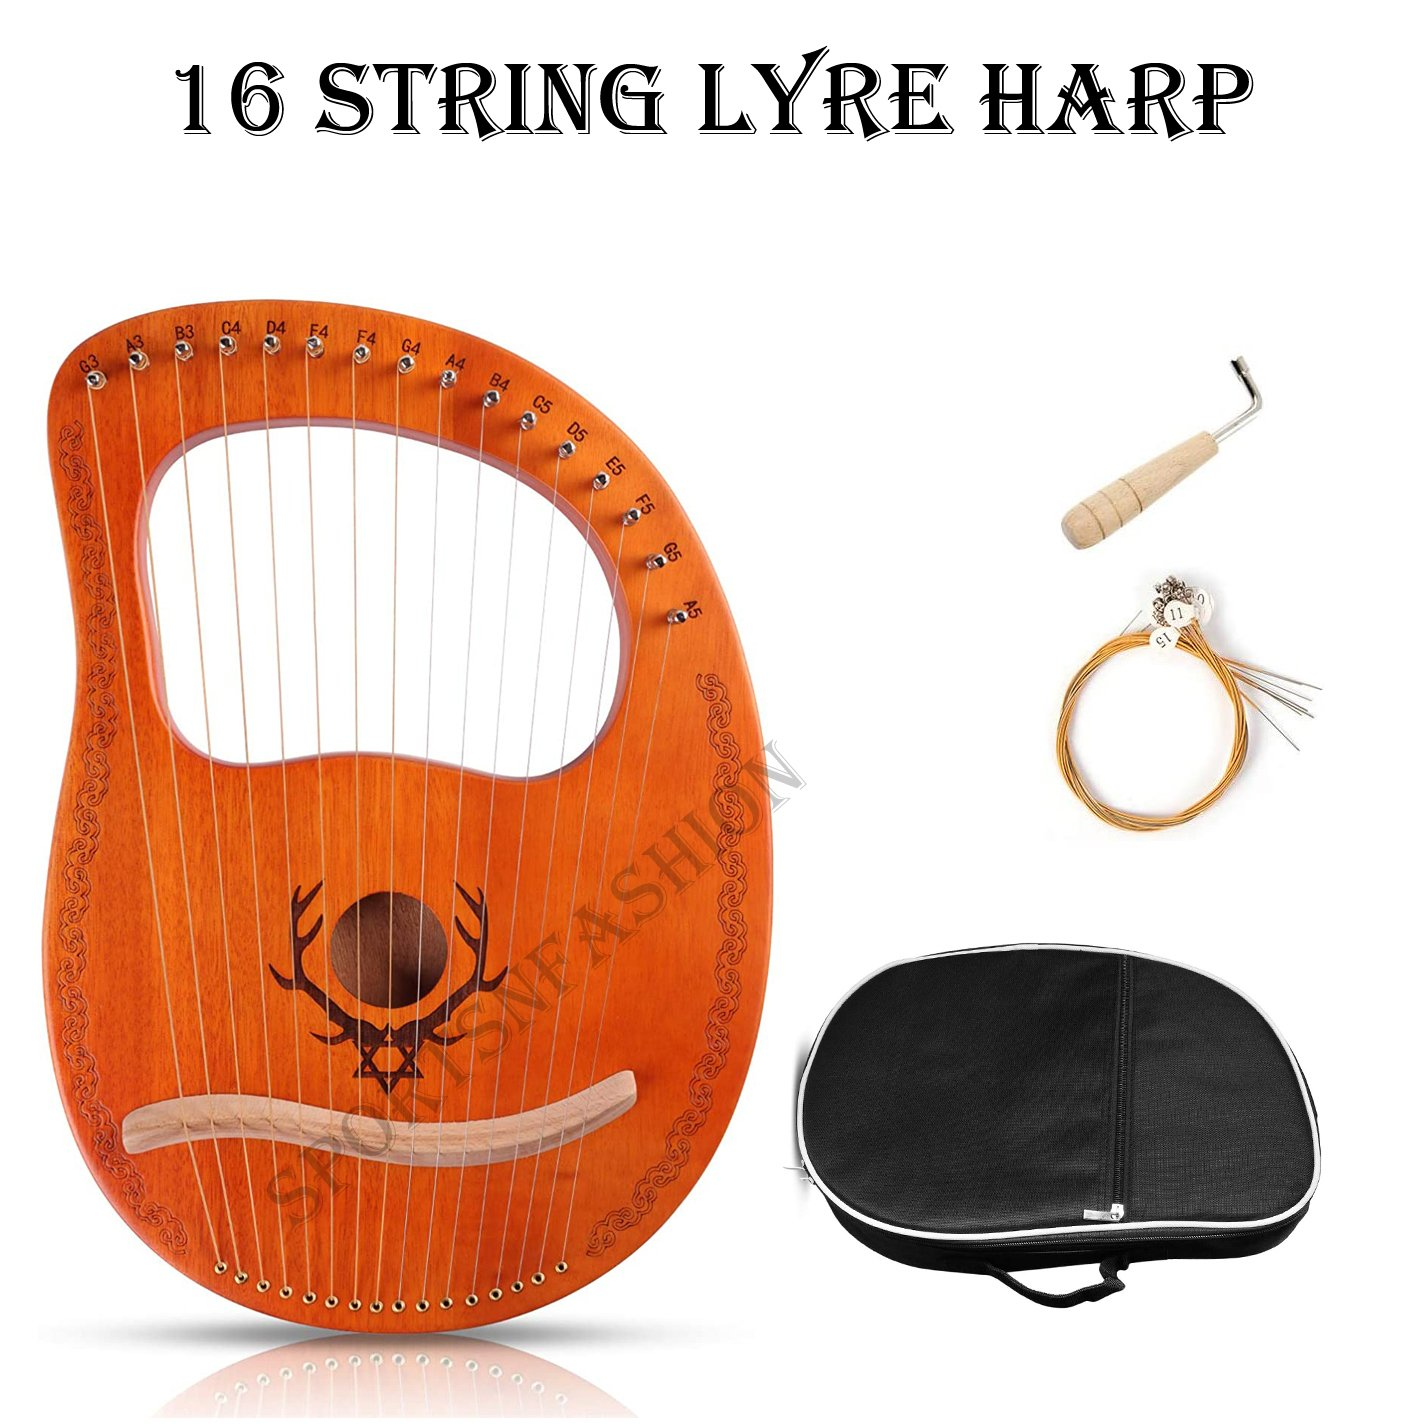 16 string Lyre Harp Plywood Body String Instrument with Tuning key